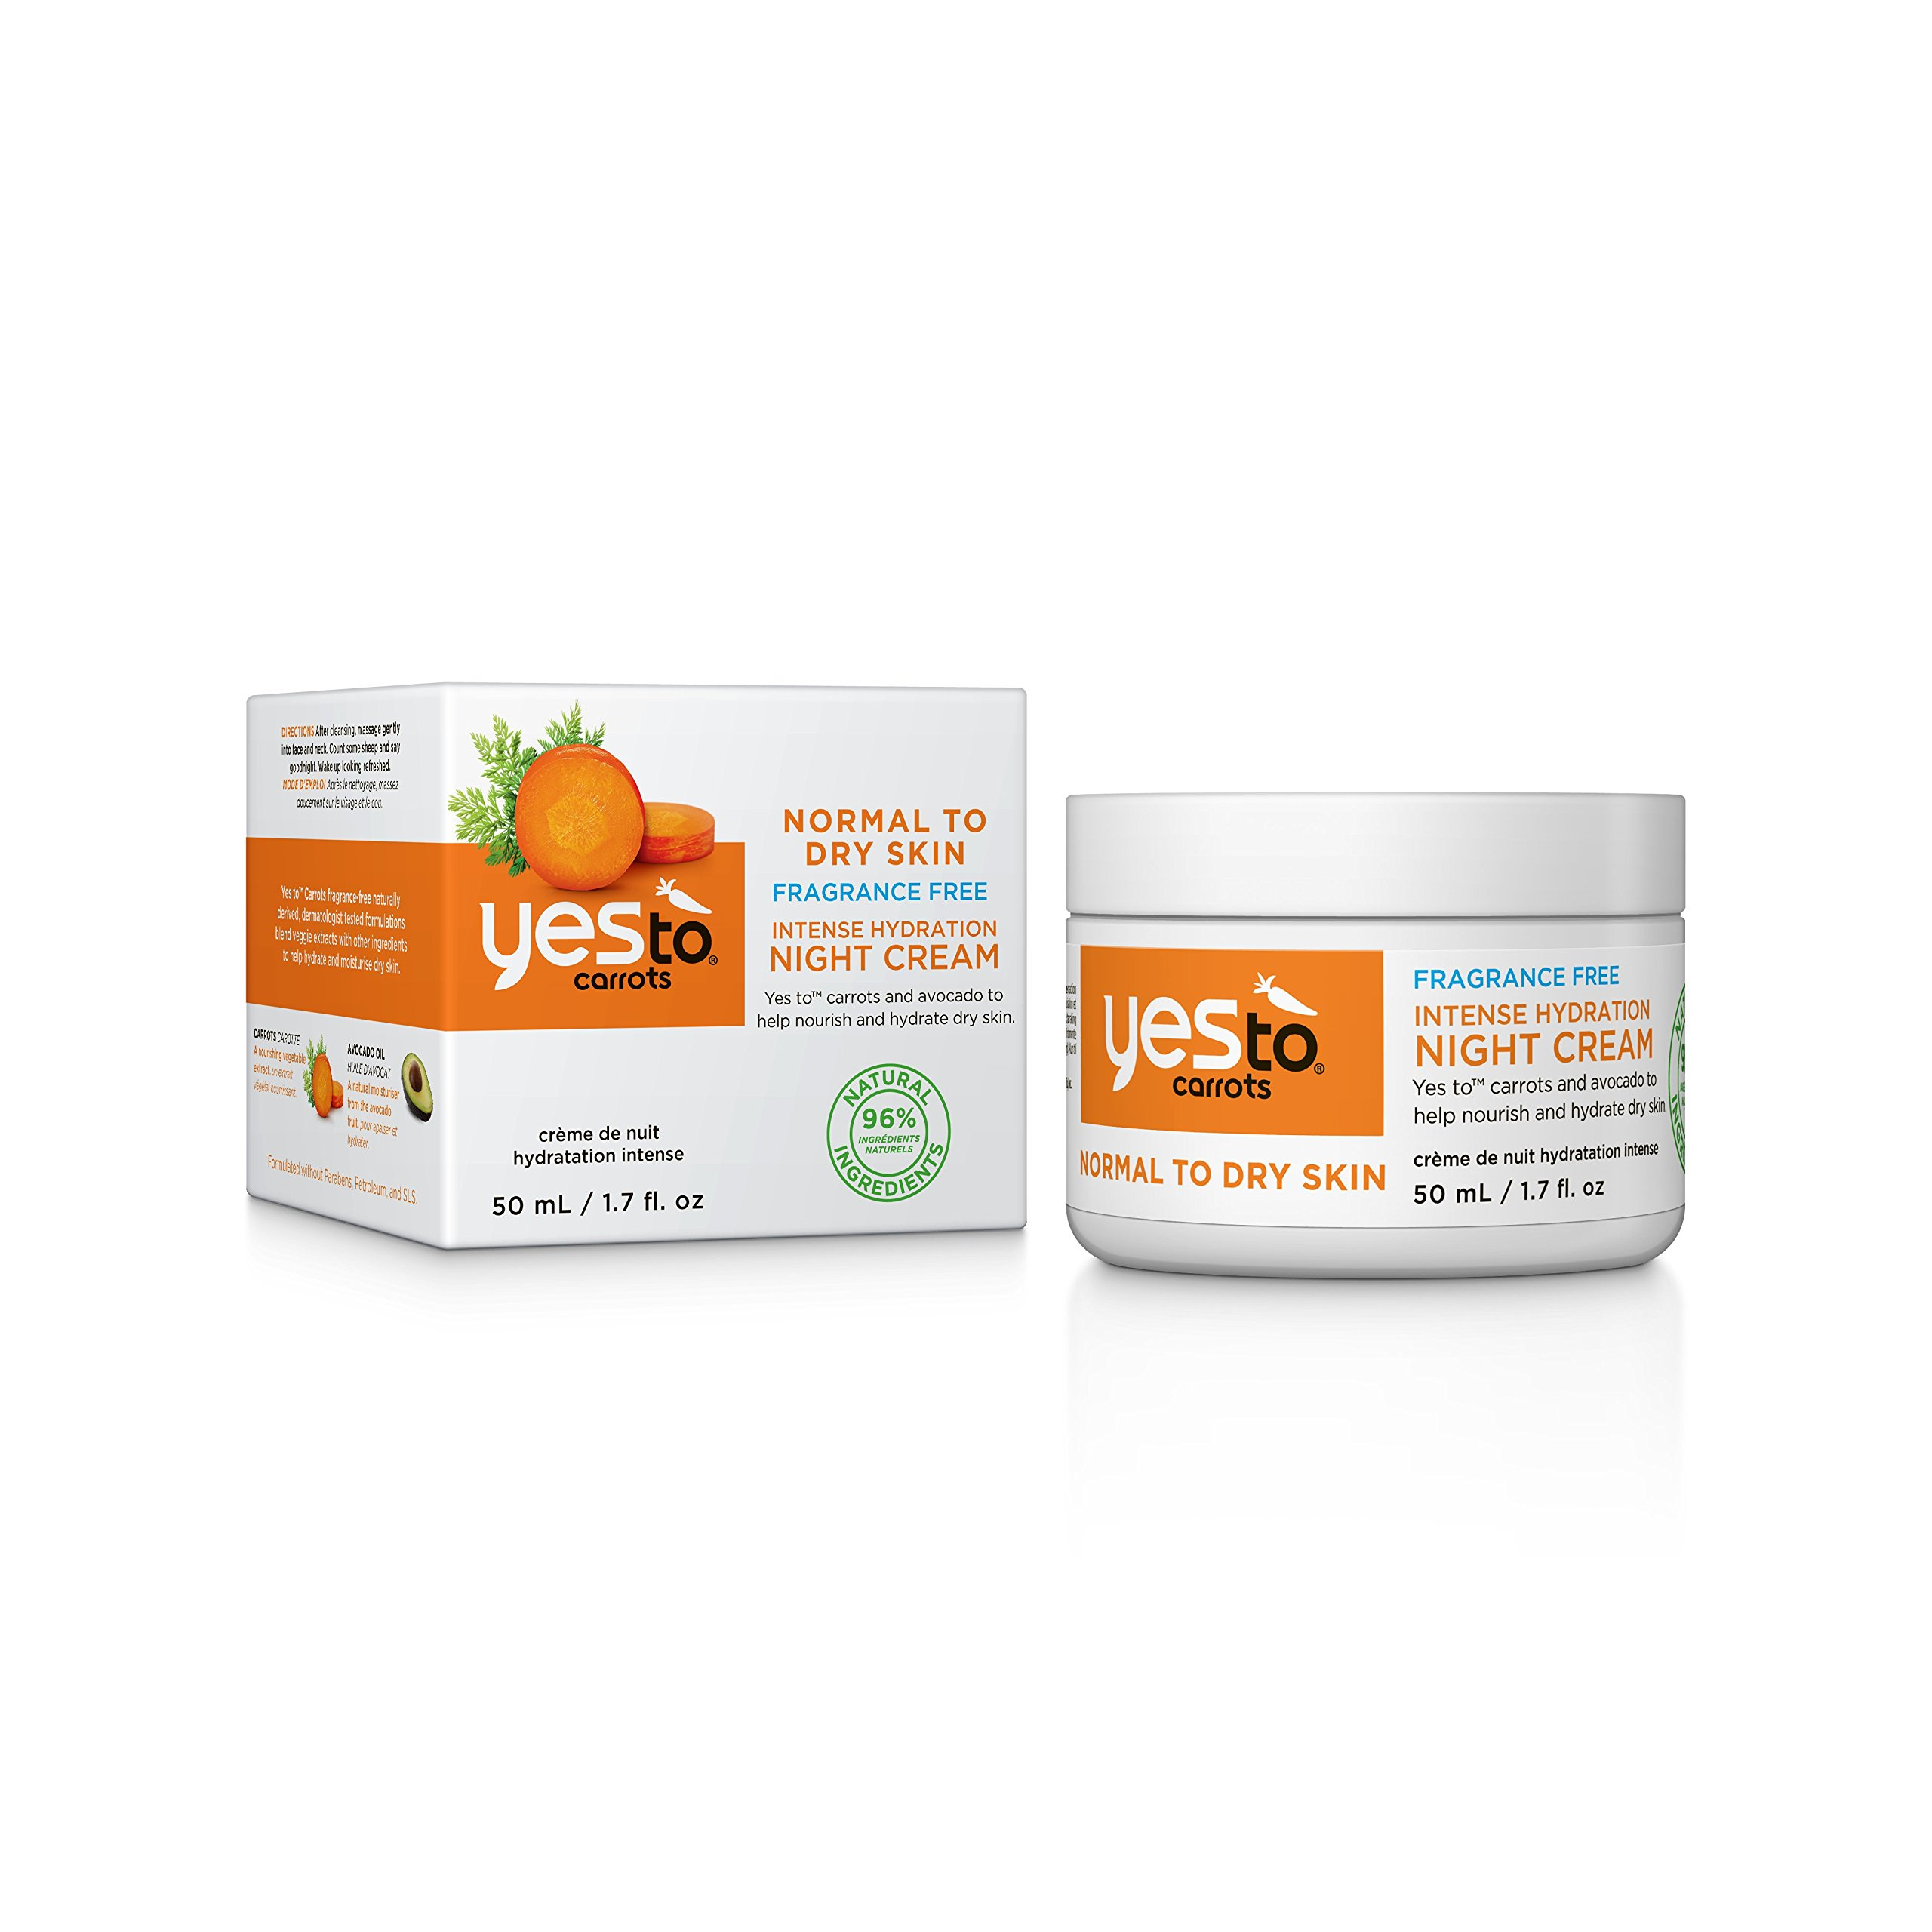 Yes To Carrots SPF 15 Fragrance-Free Daily Moisturizer, 1.7 Fluid Ounce 1000 Roses Cleansing Foam with Rose Stem Cells - 5.5 fl. oz. by Andalou Naturals (pack of 1)